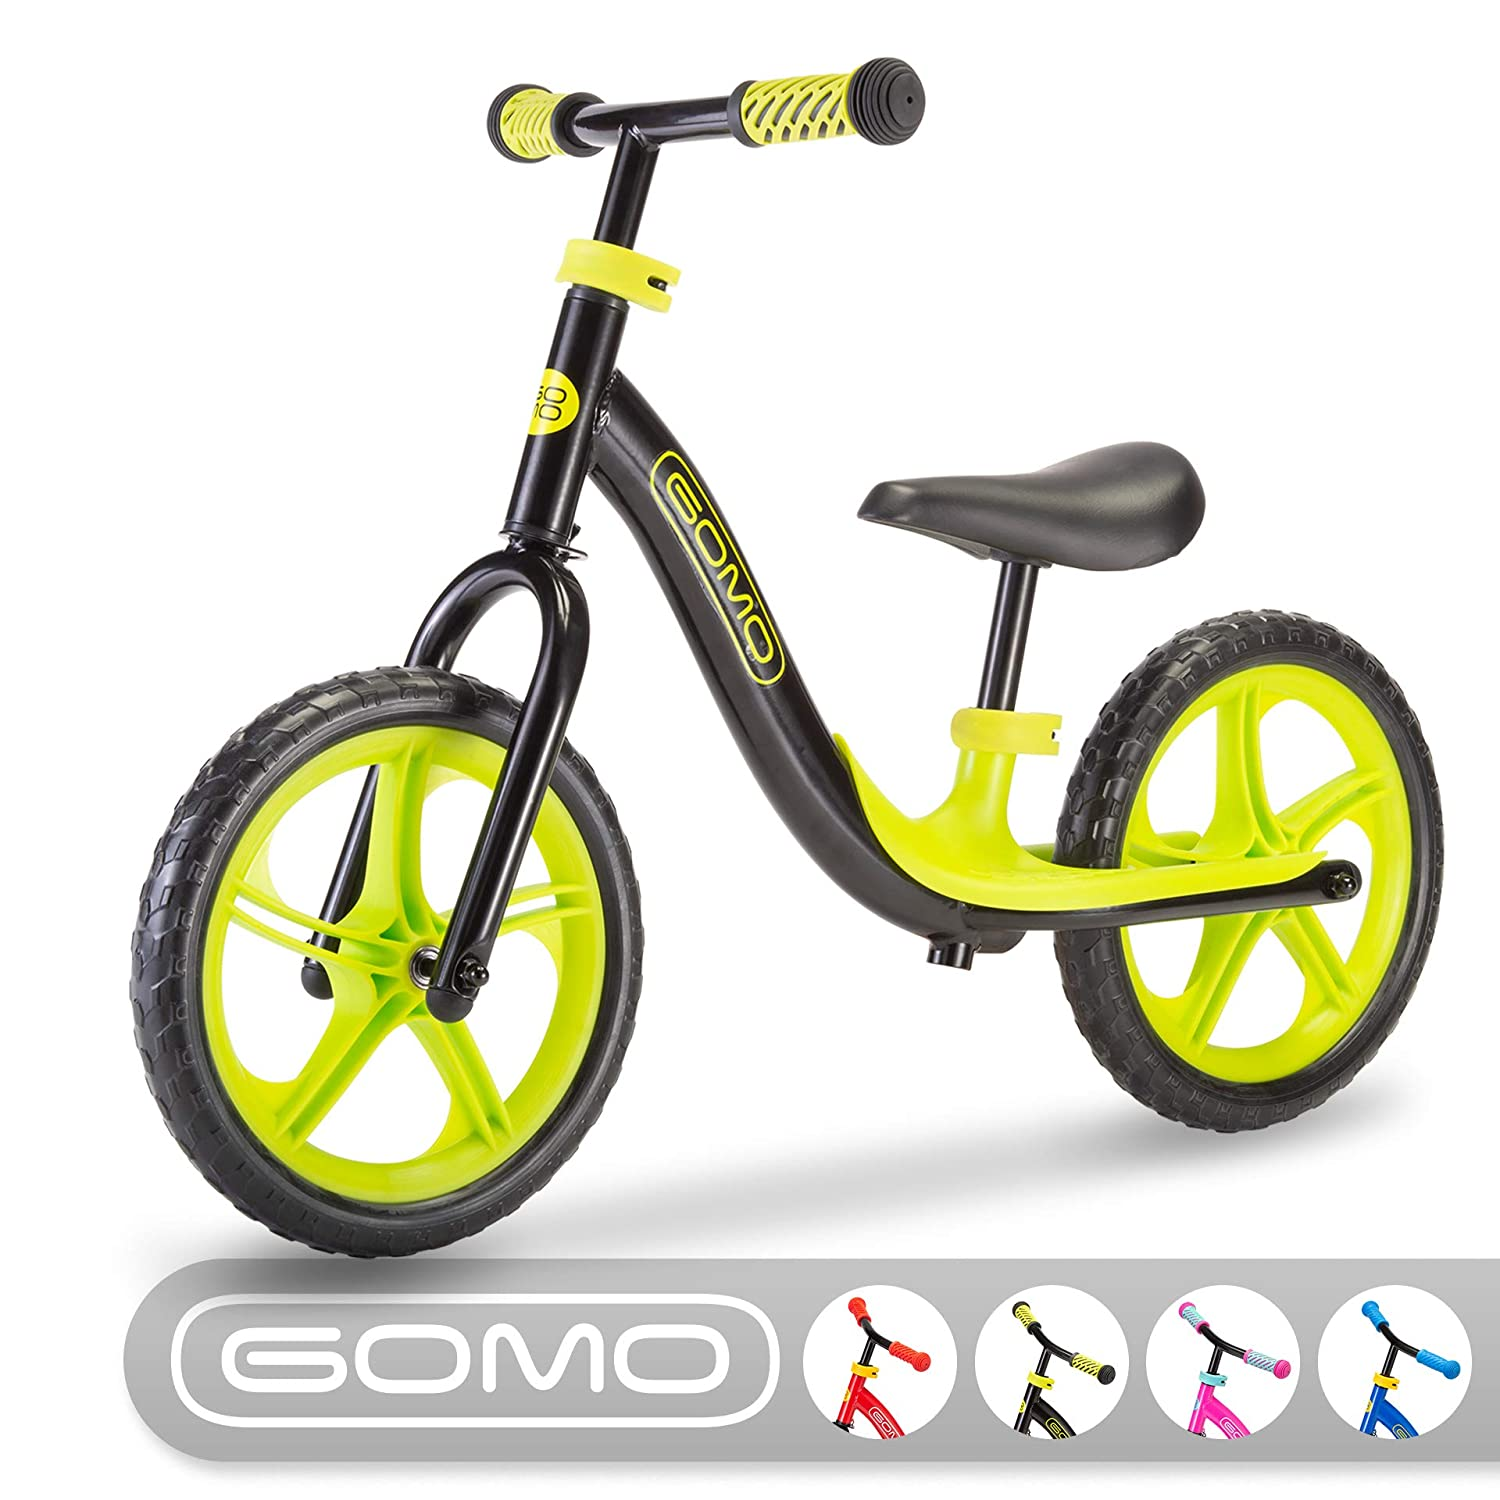 Image result for gomo balance bike